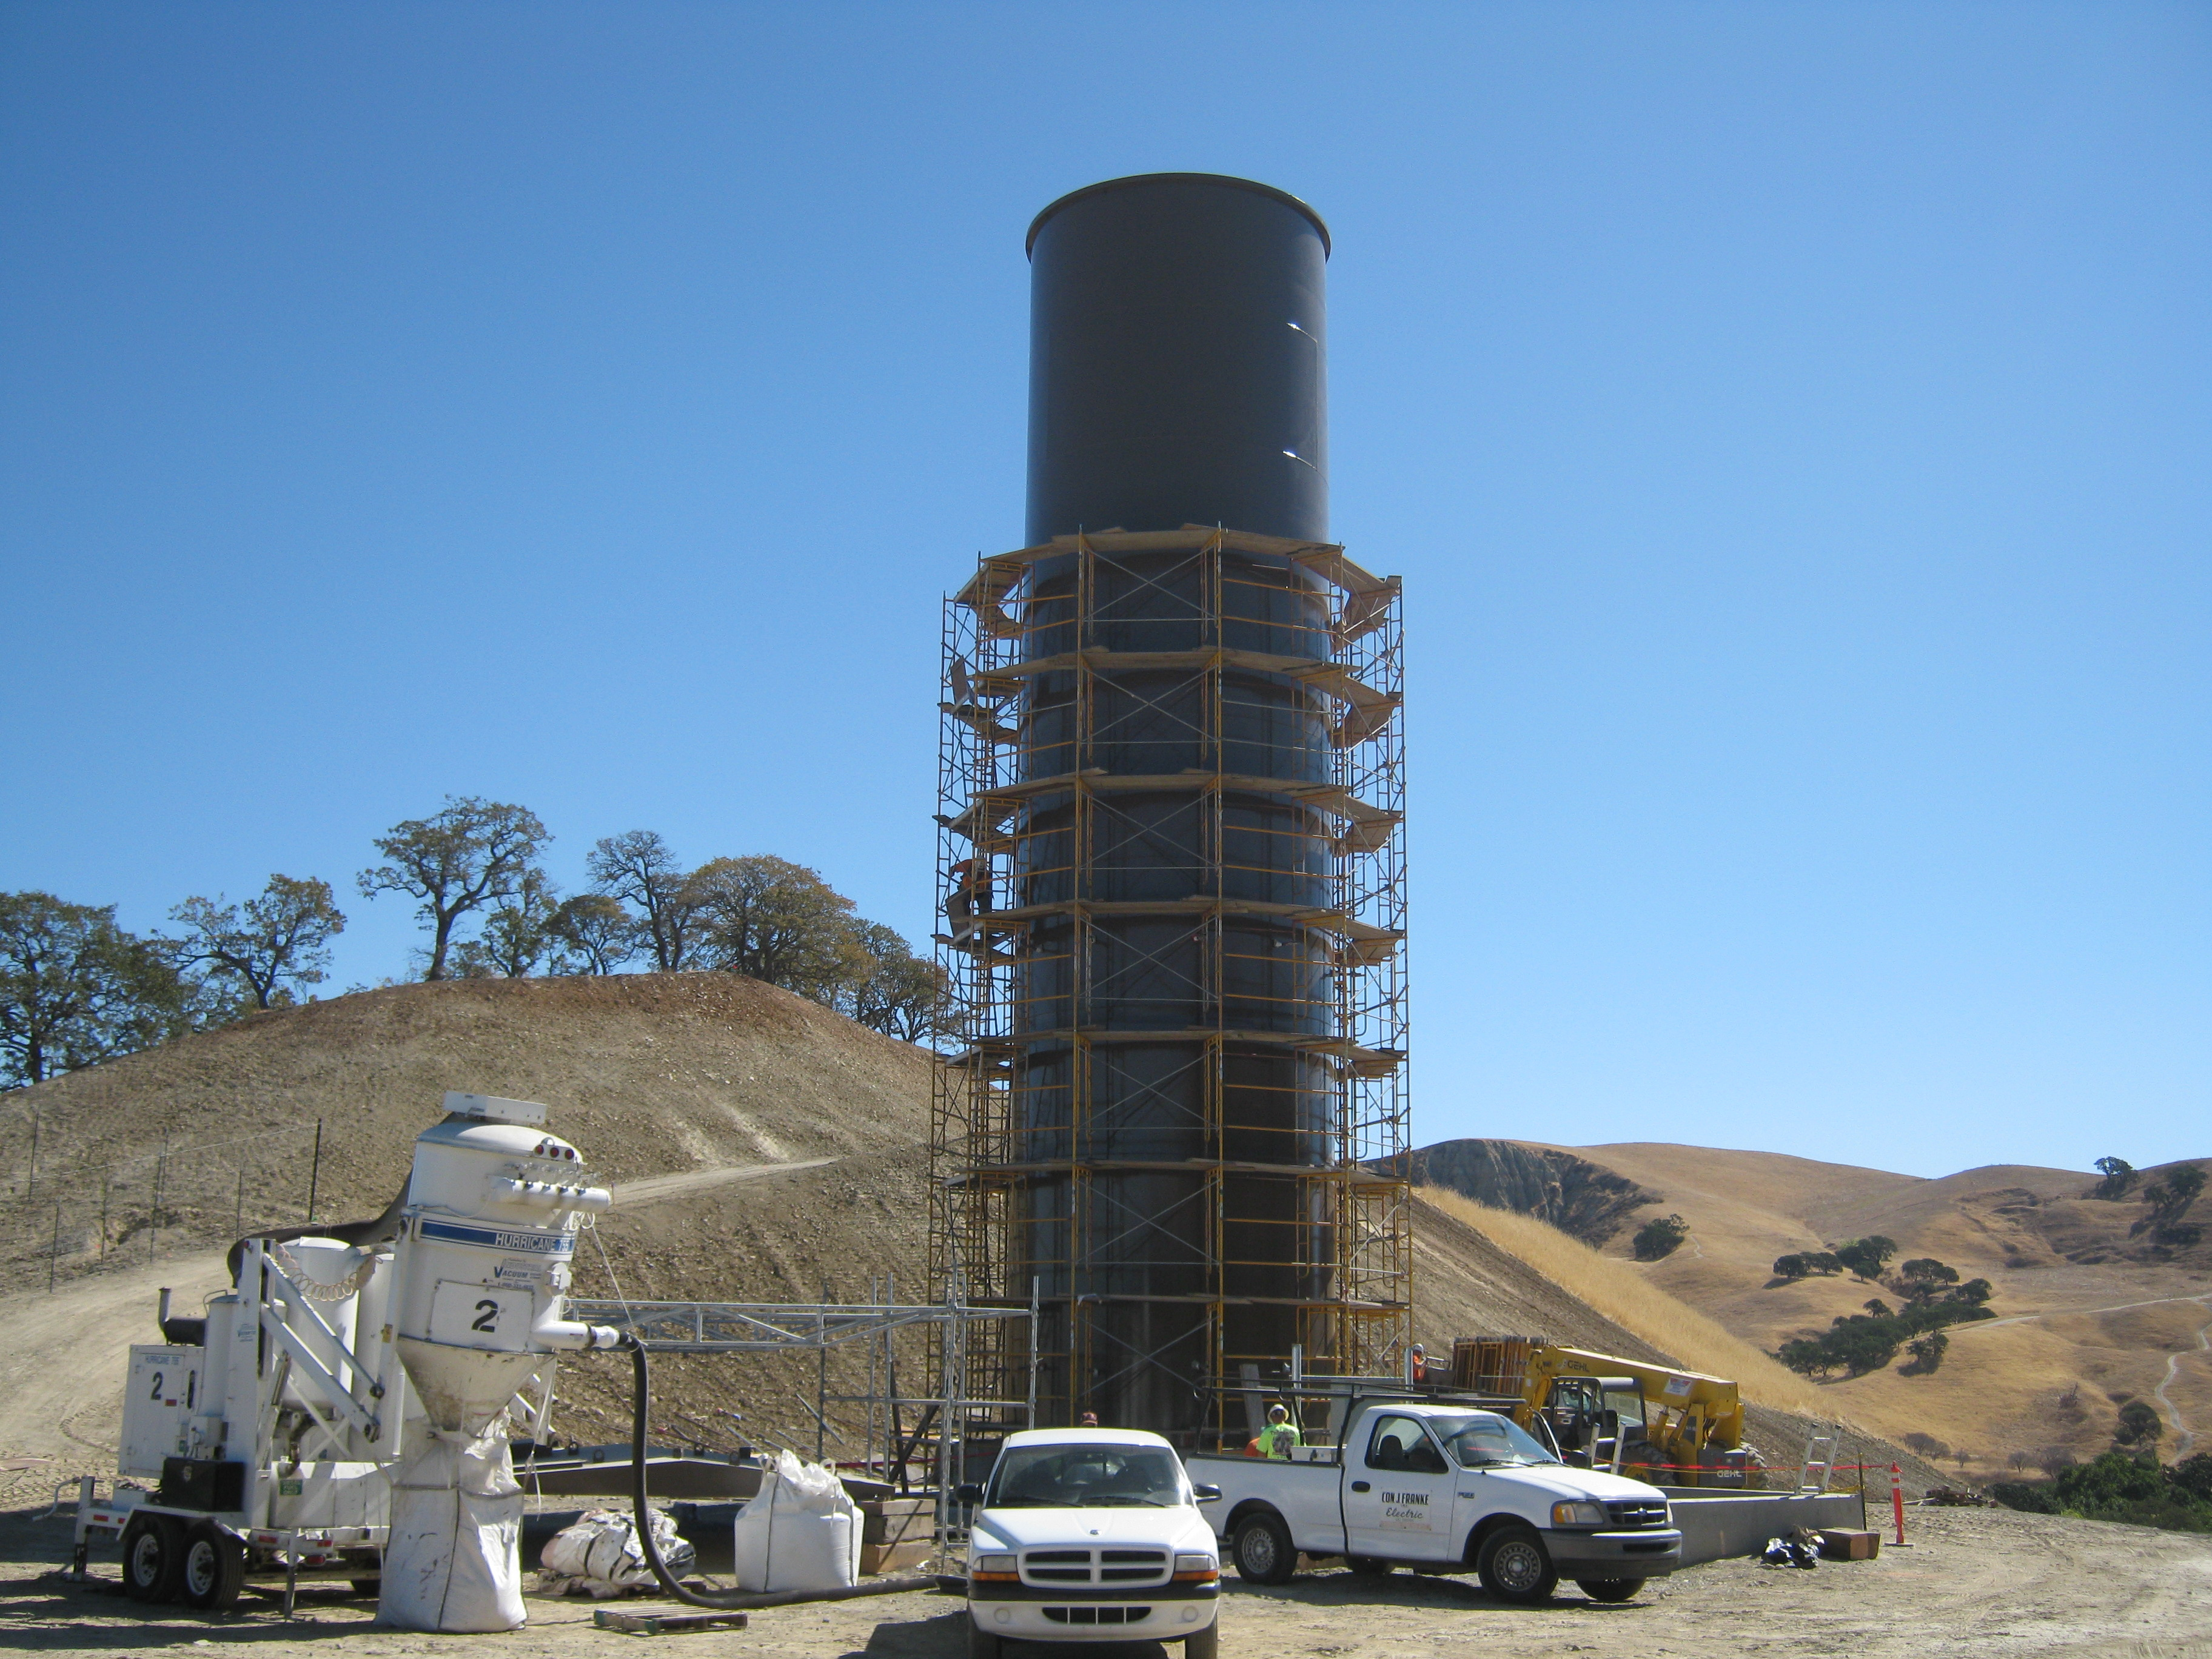 DWR Wente Tank - Jeffco Painting & Coating, Inc.